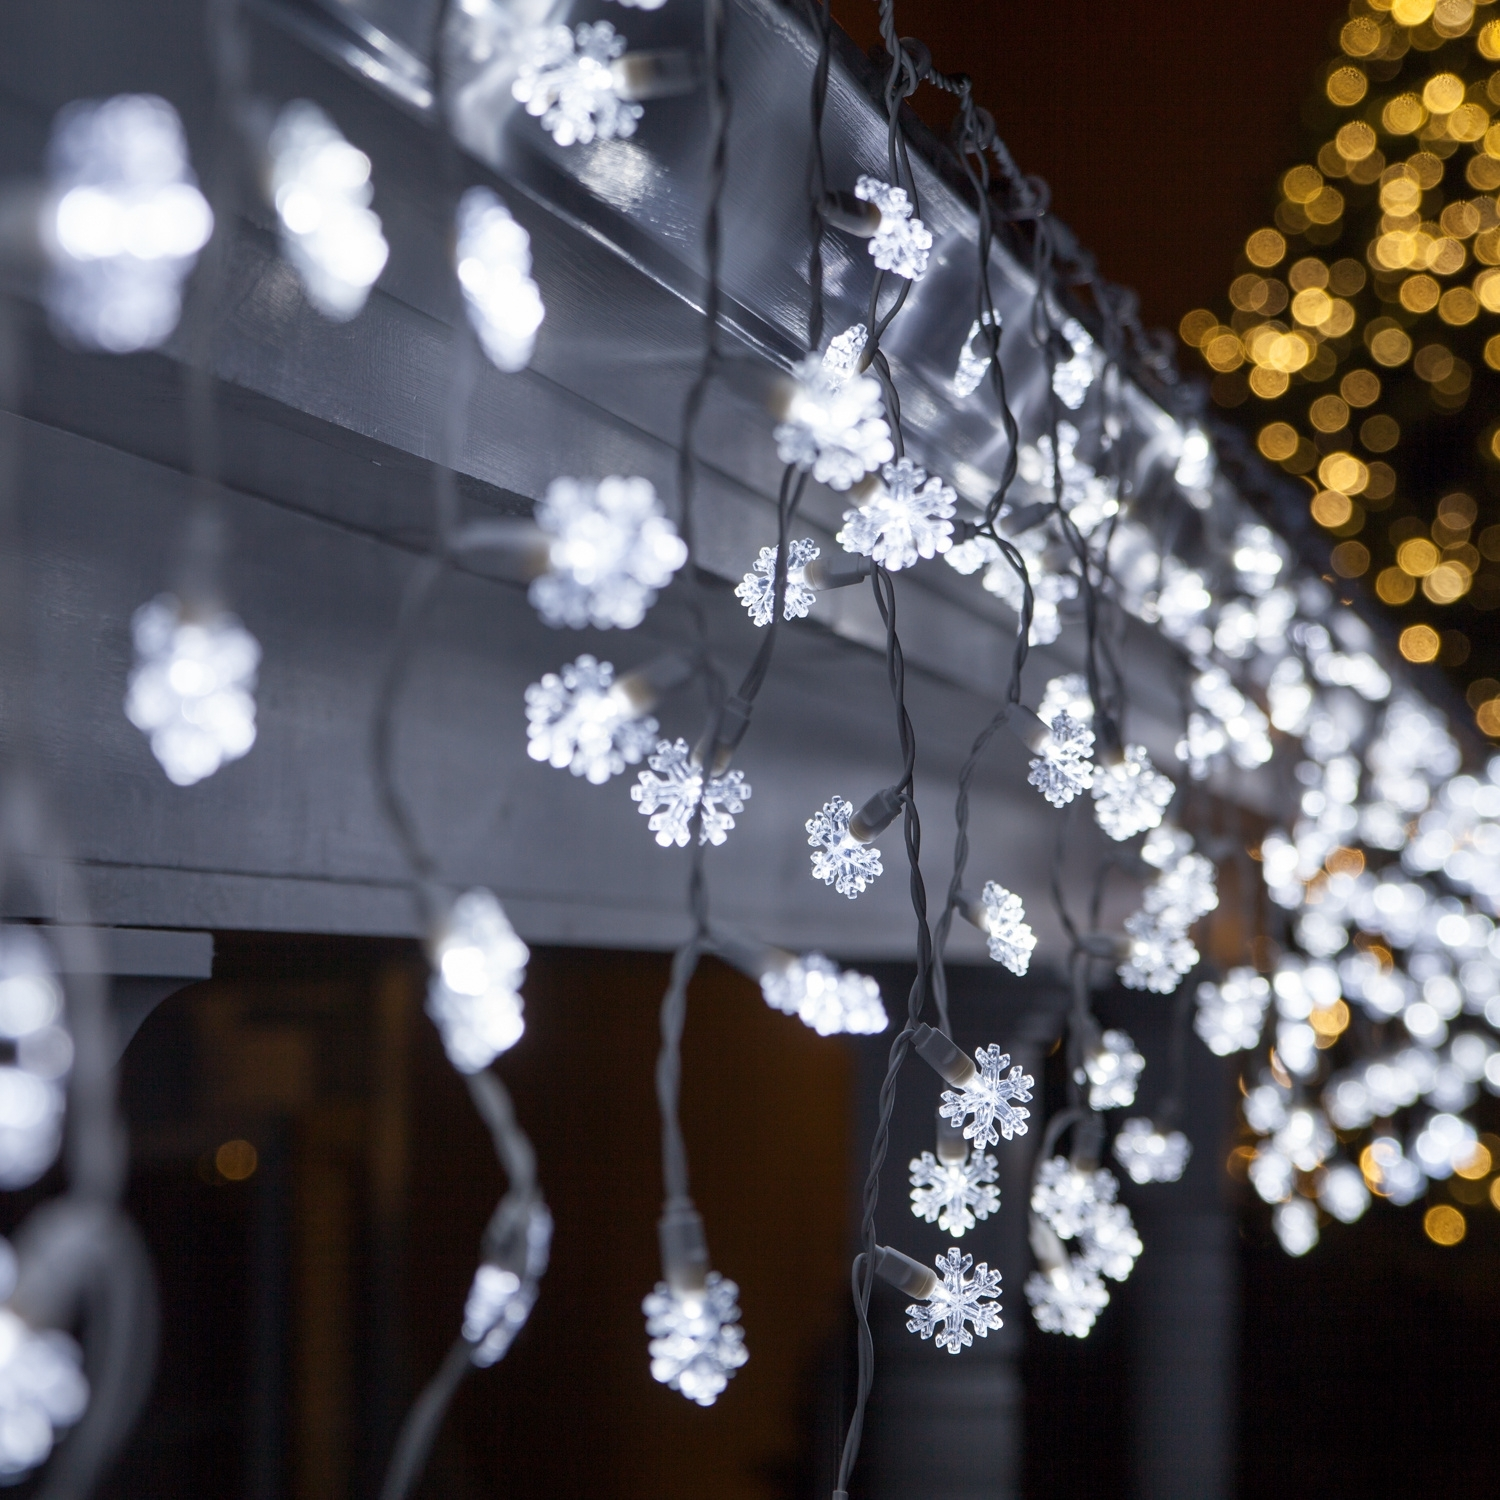 Led Christmas Lights – 70 Cool White Snowflake Led Icicle Lights Inside Outdoor Hanging Snowflake Lights (View 7 of 15)